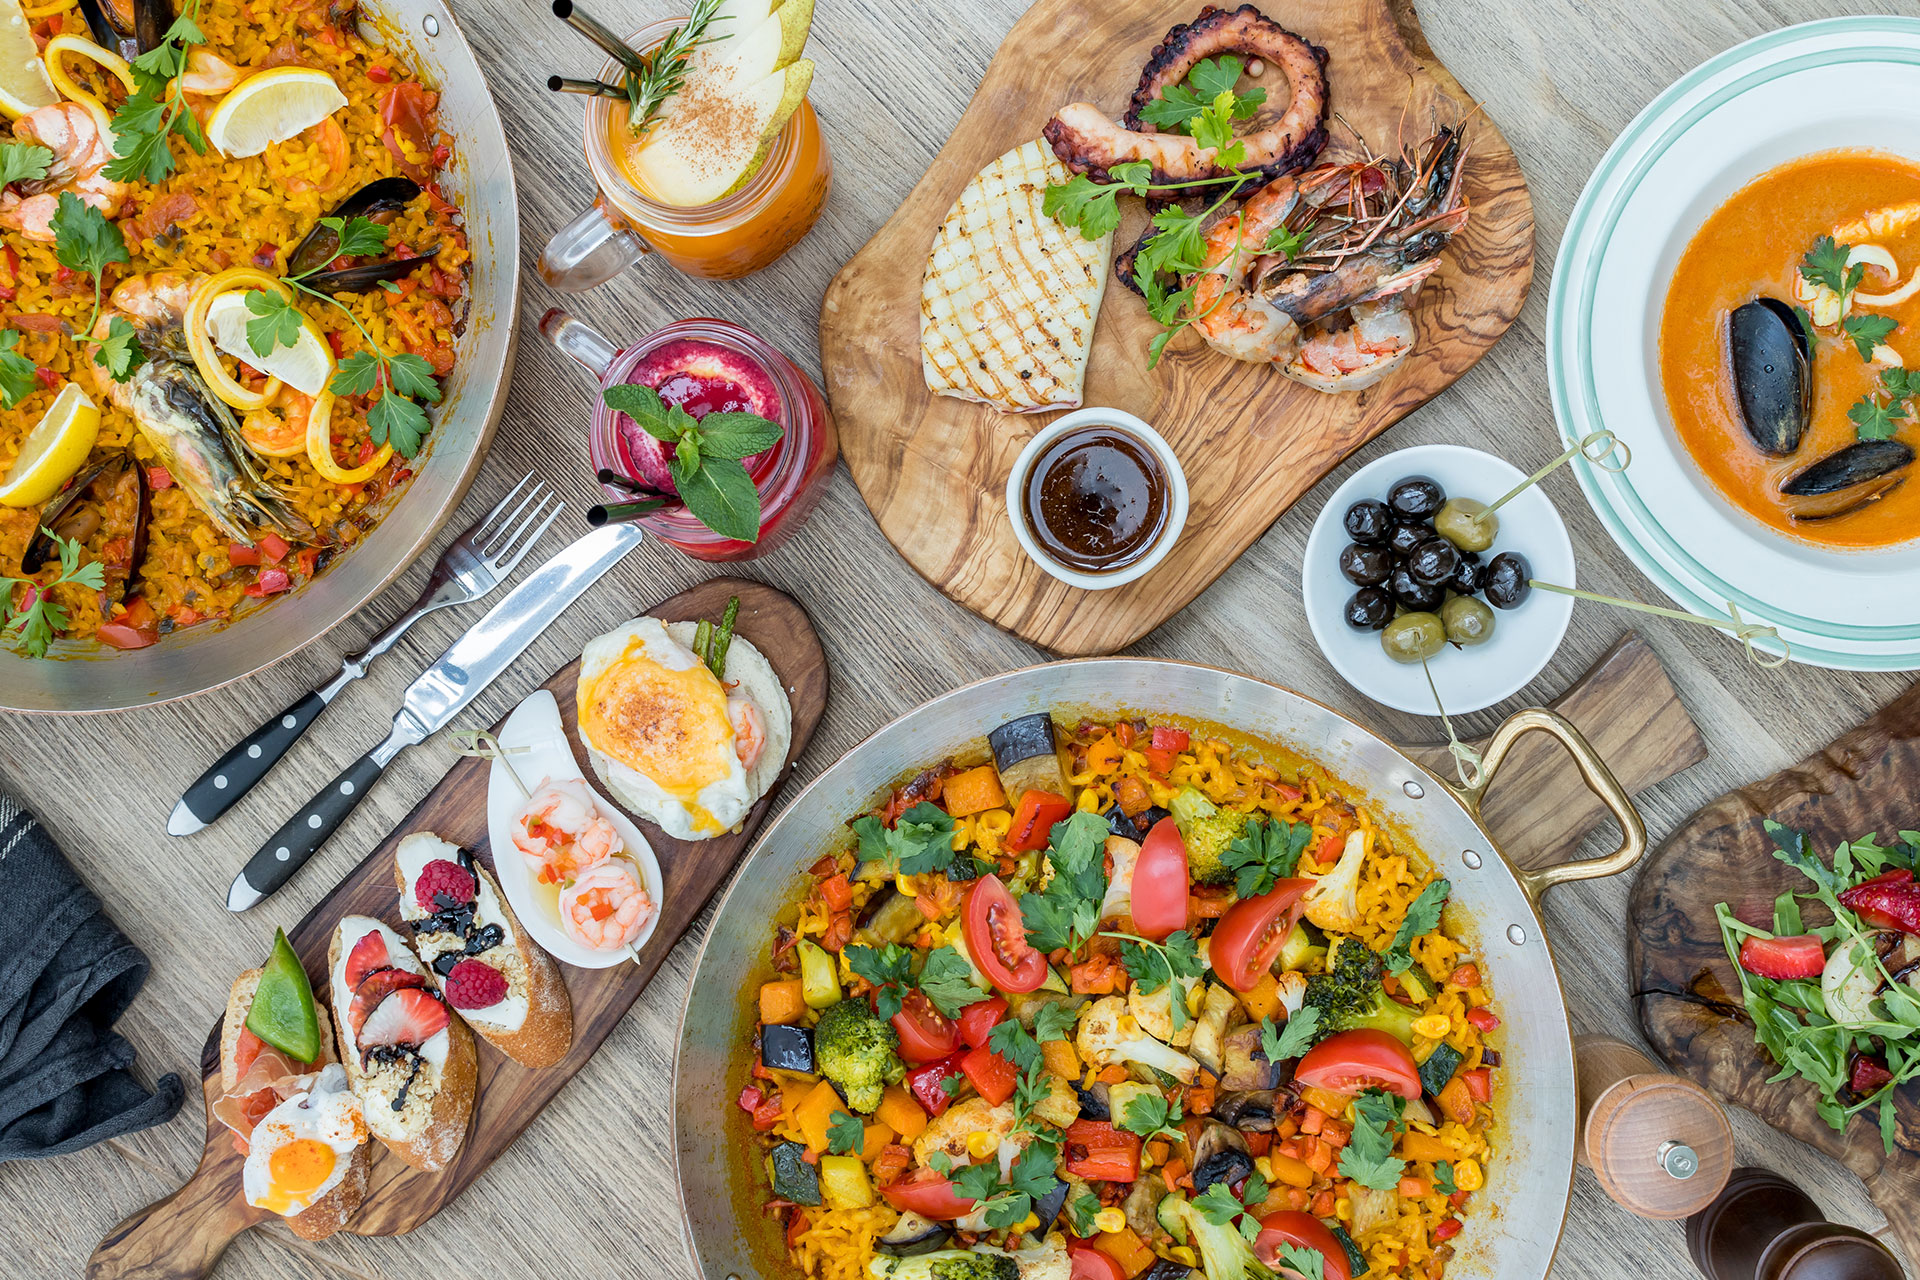 A table arranged with Spanish food featuring vegetable paella, tapas, grilled seafood, and olives.